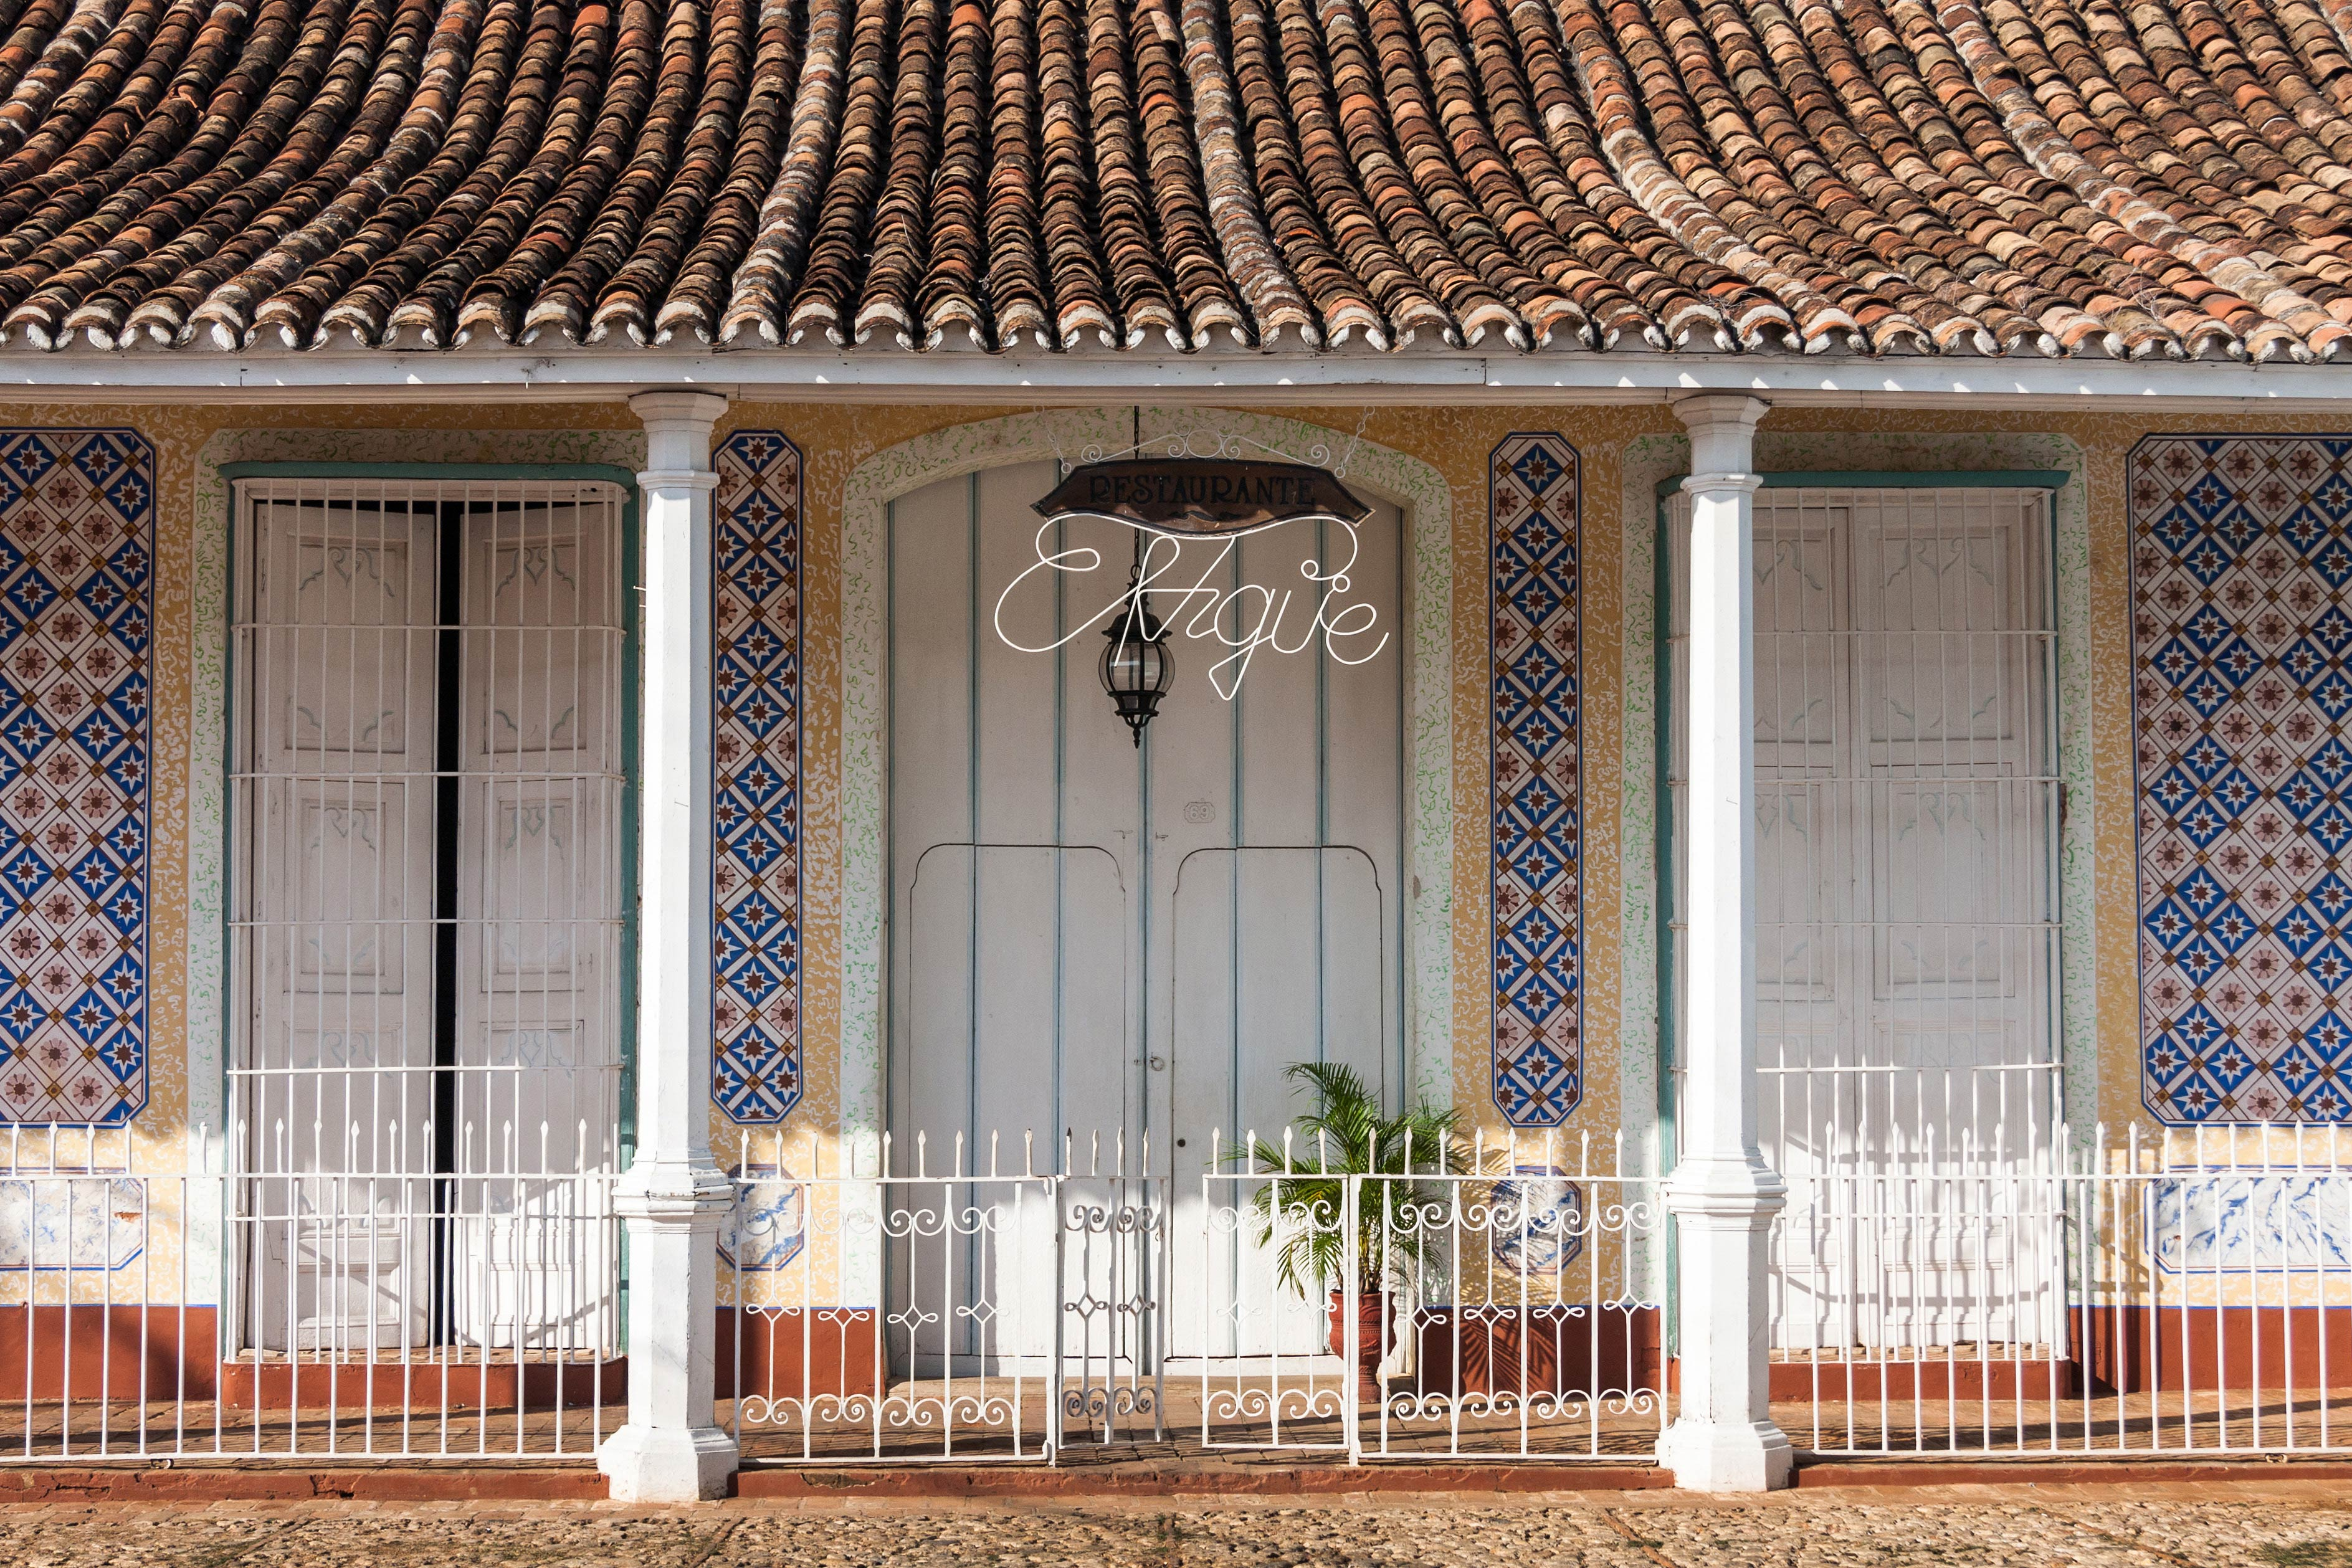 redesigning your home with cuban tile